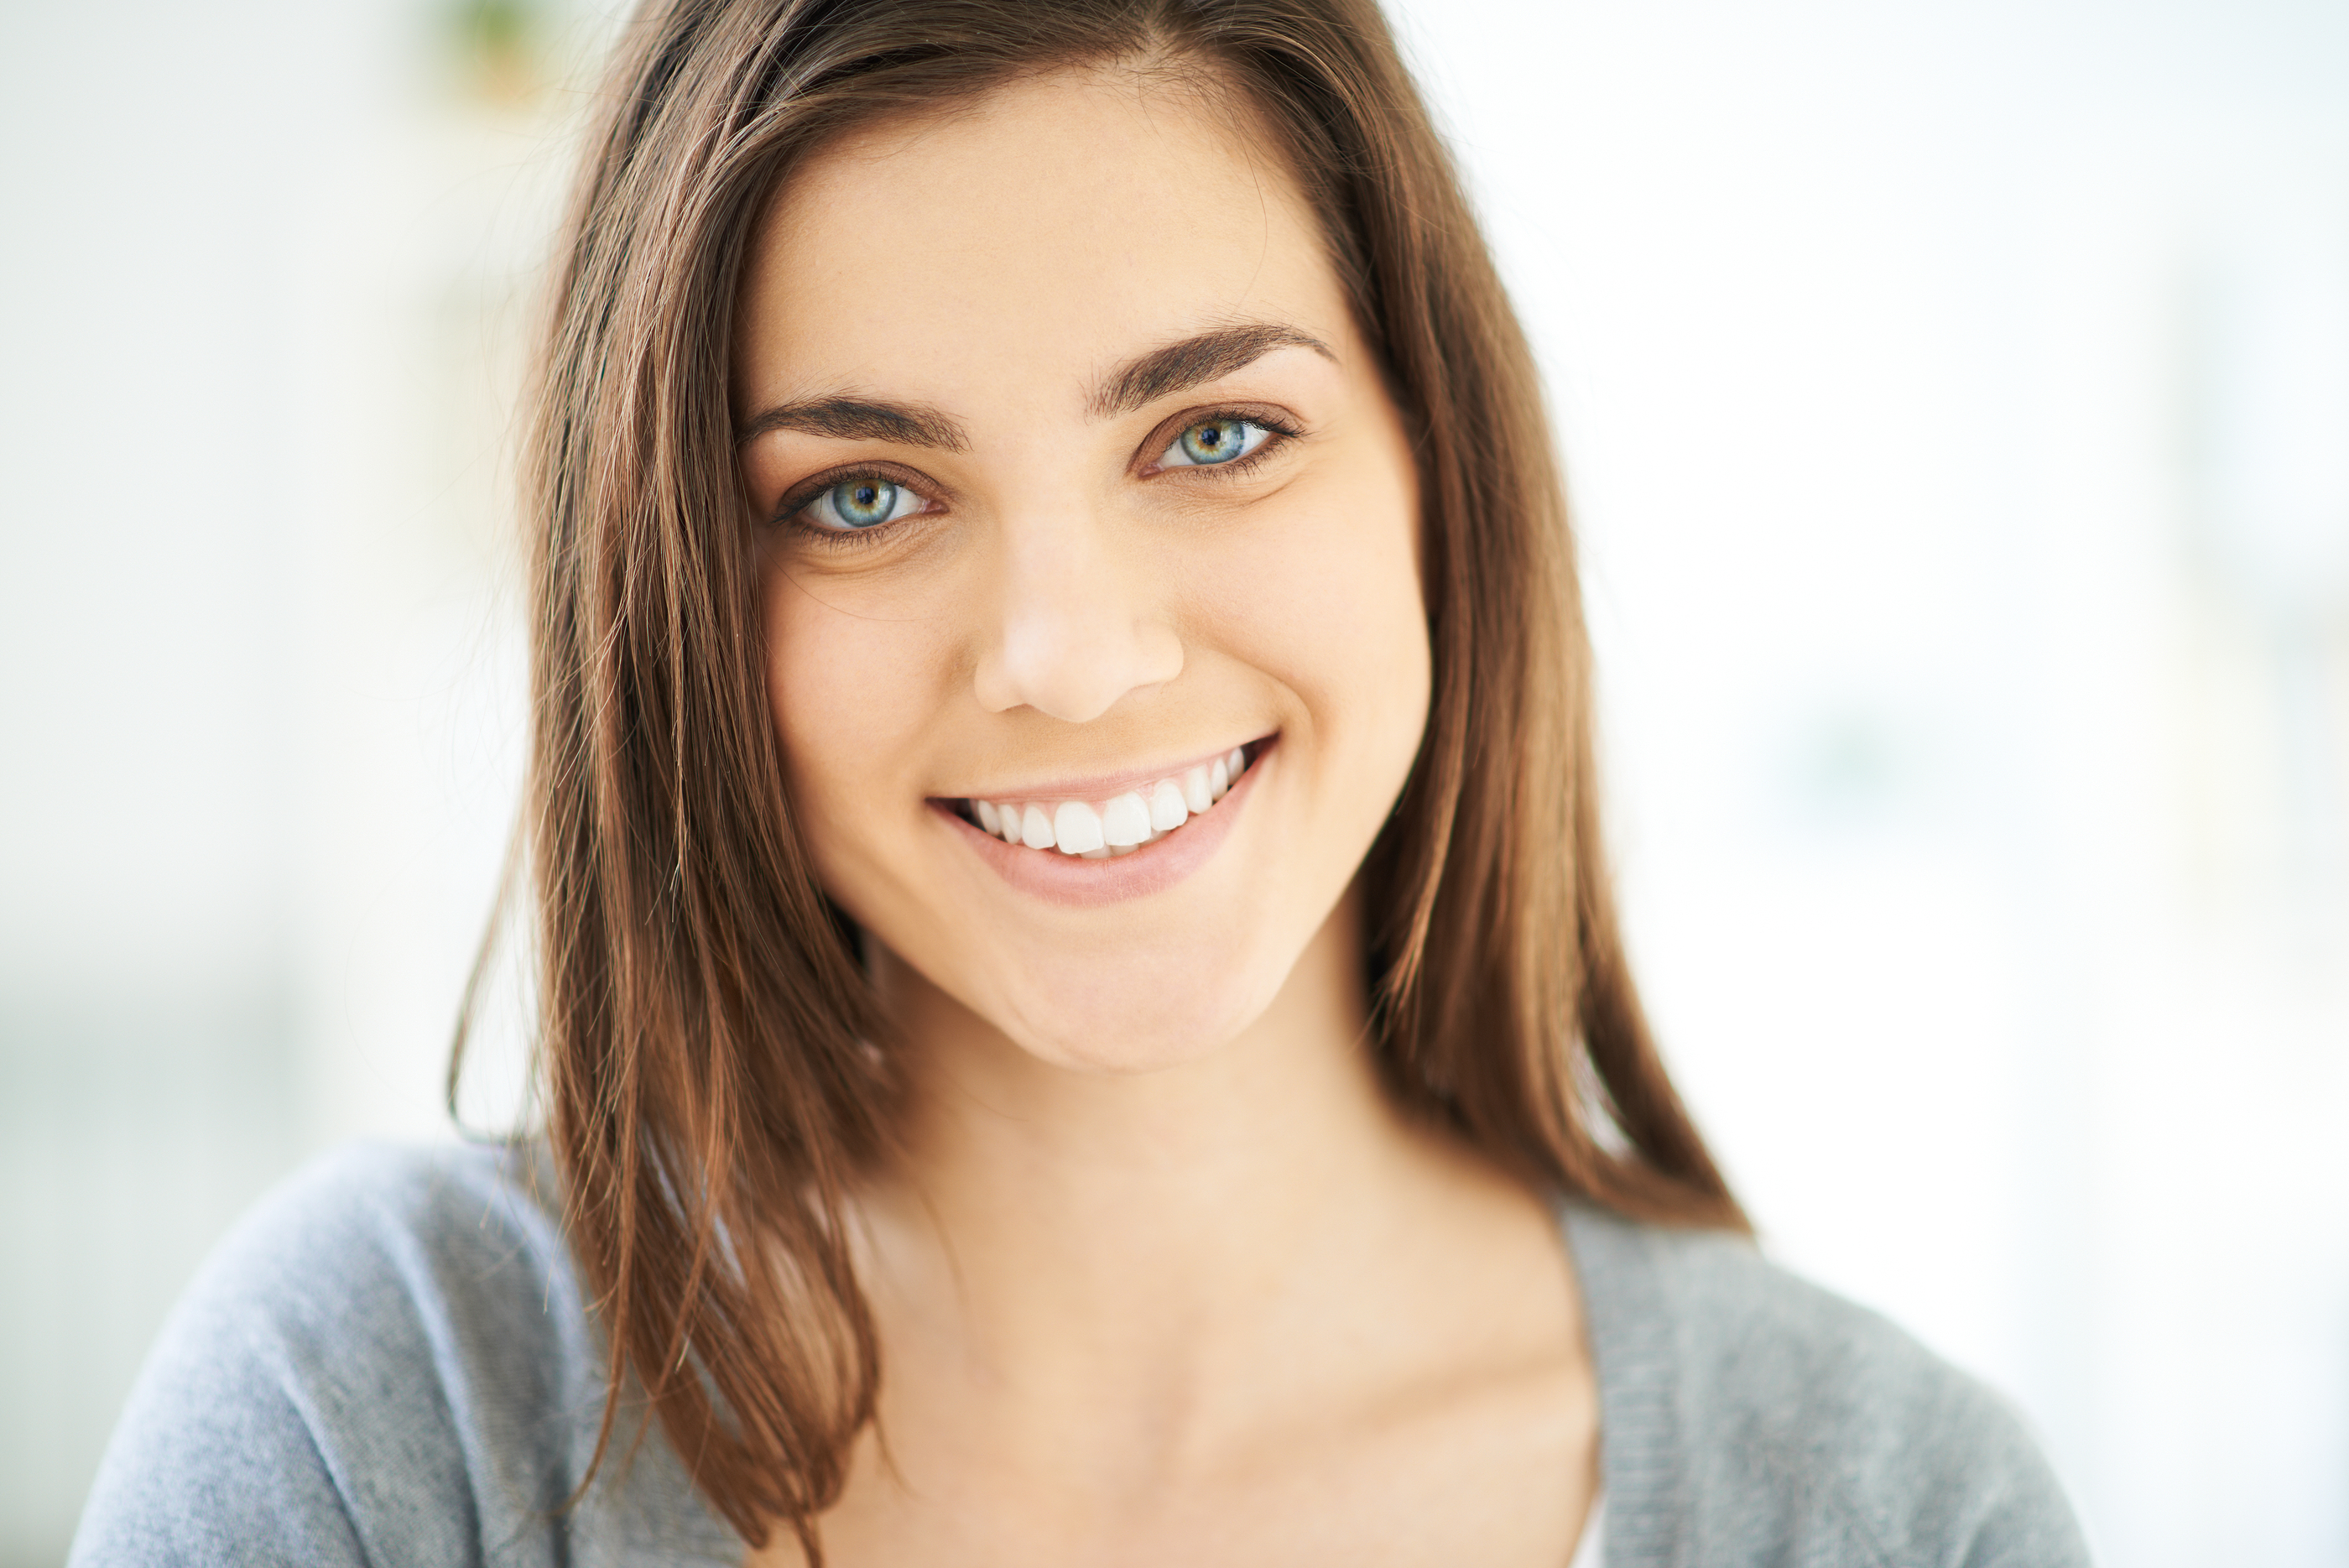 Happy young woman looking at camera with smile